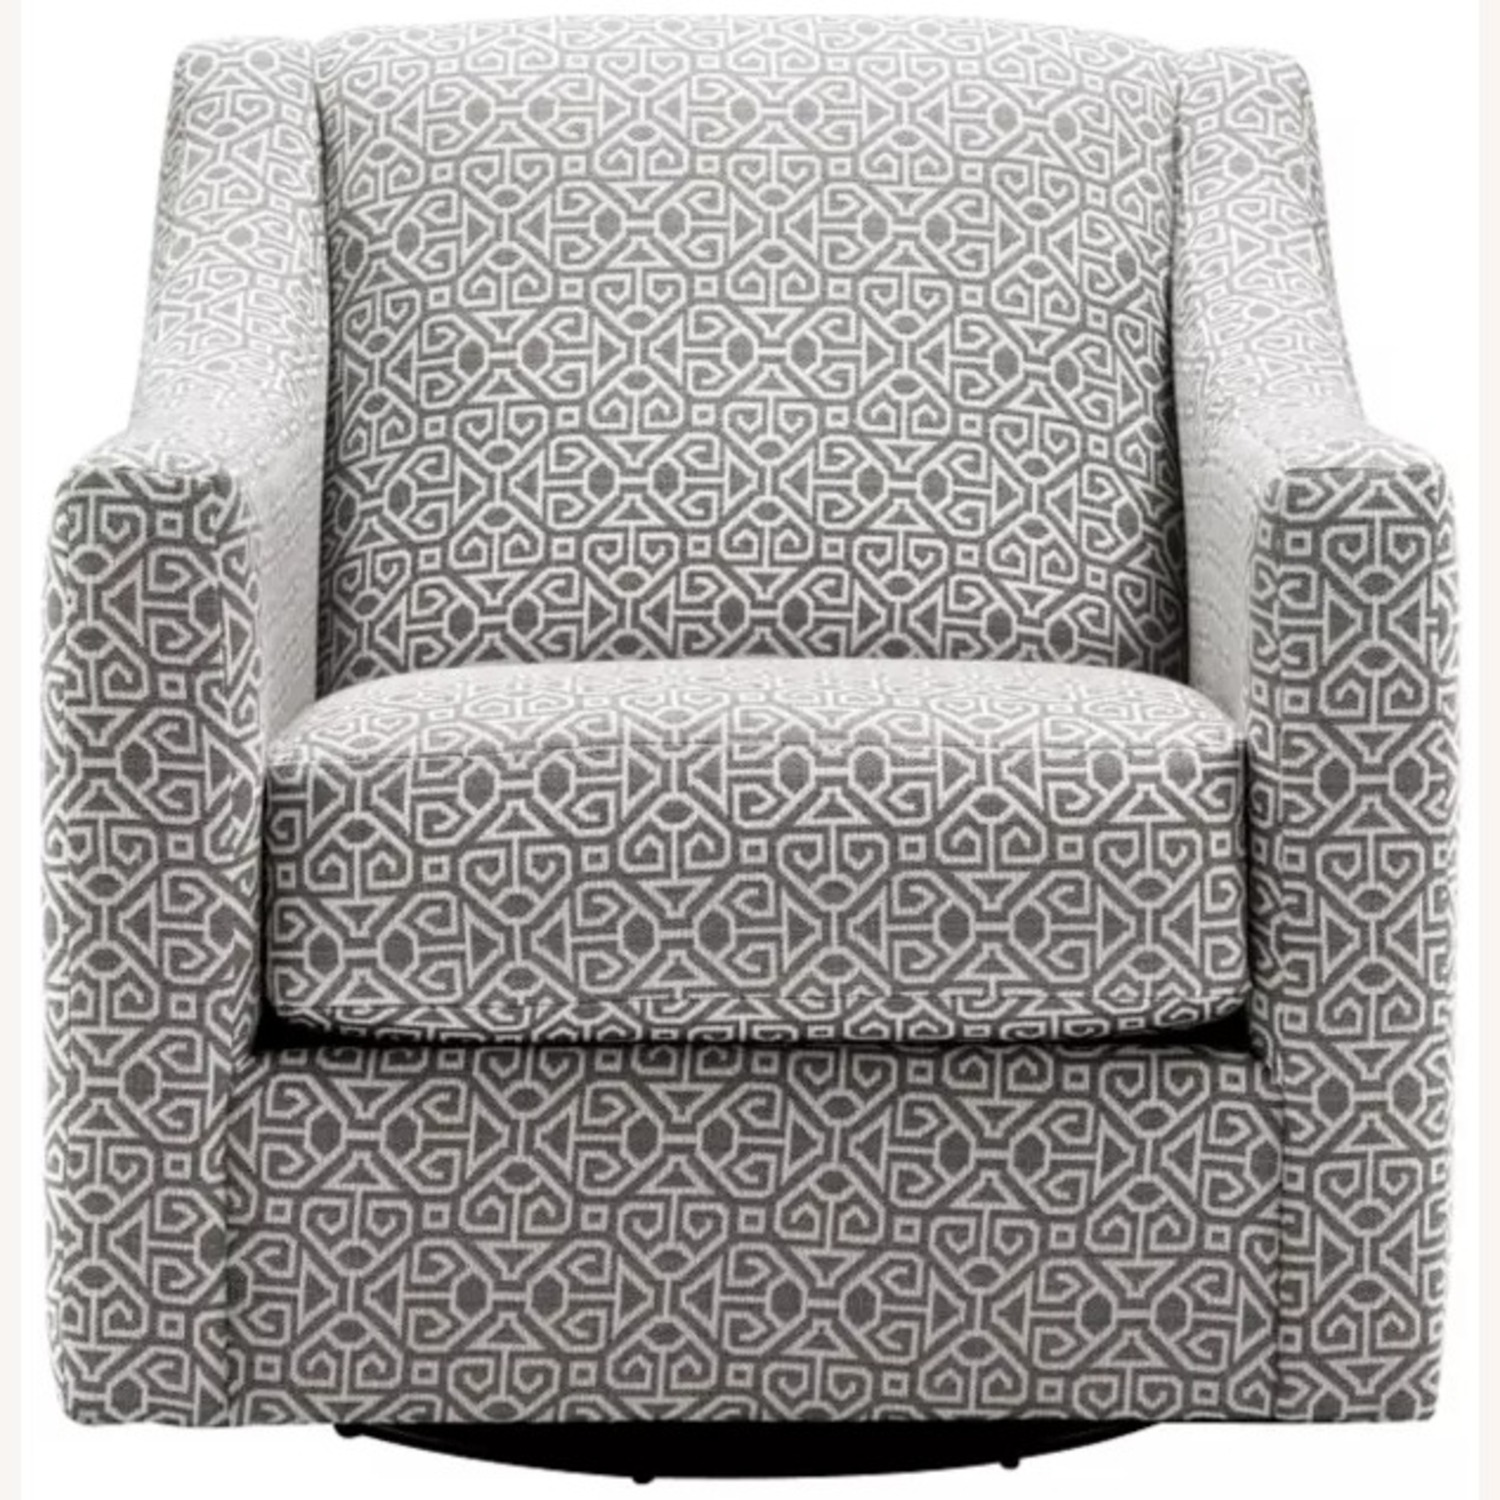 Raymour & Flanigan Pewter Accent Swivel Chair - image-1